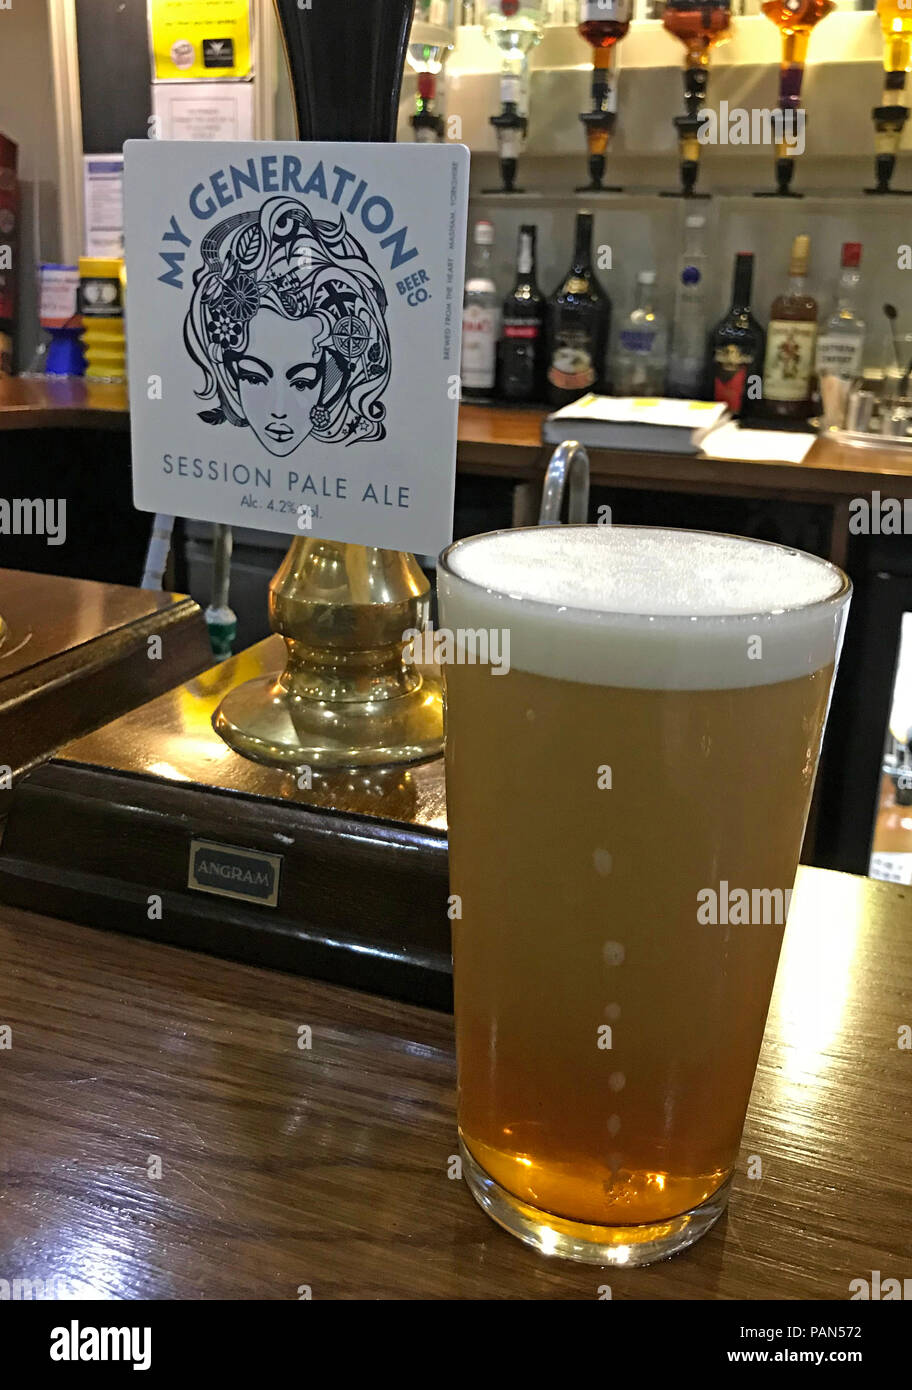 My Generation Session Pale Ale IPA, bar pump, Grappenhall, North West England, - Stock Image